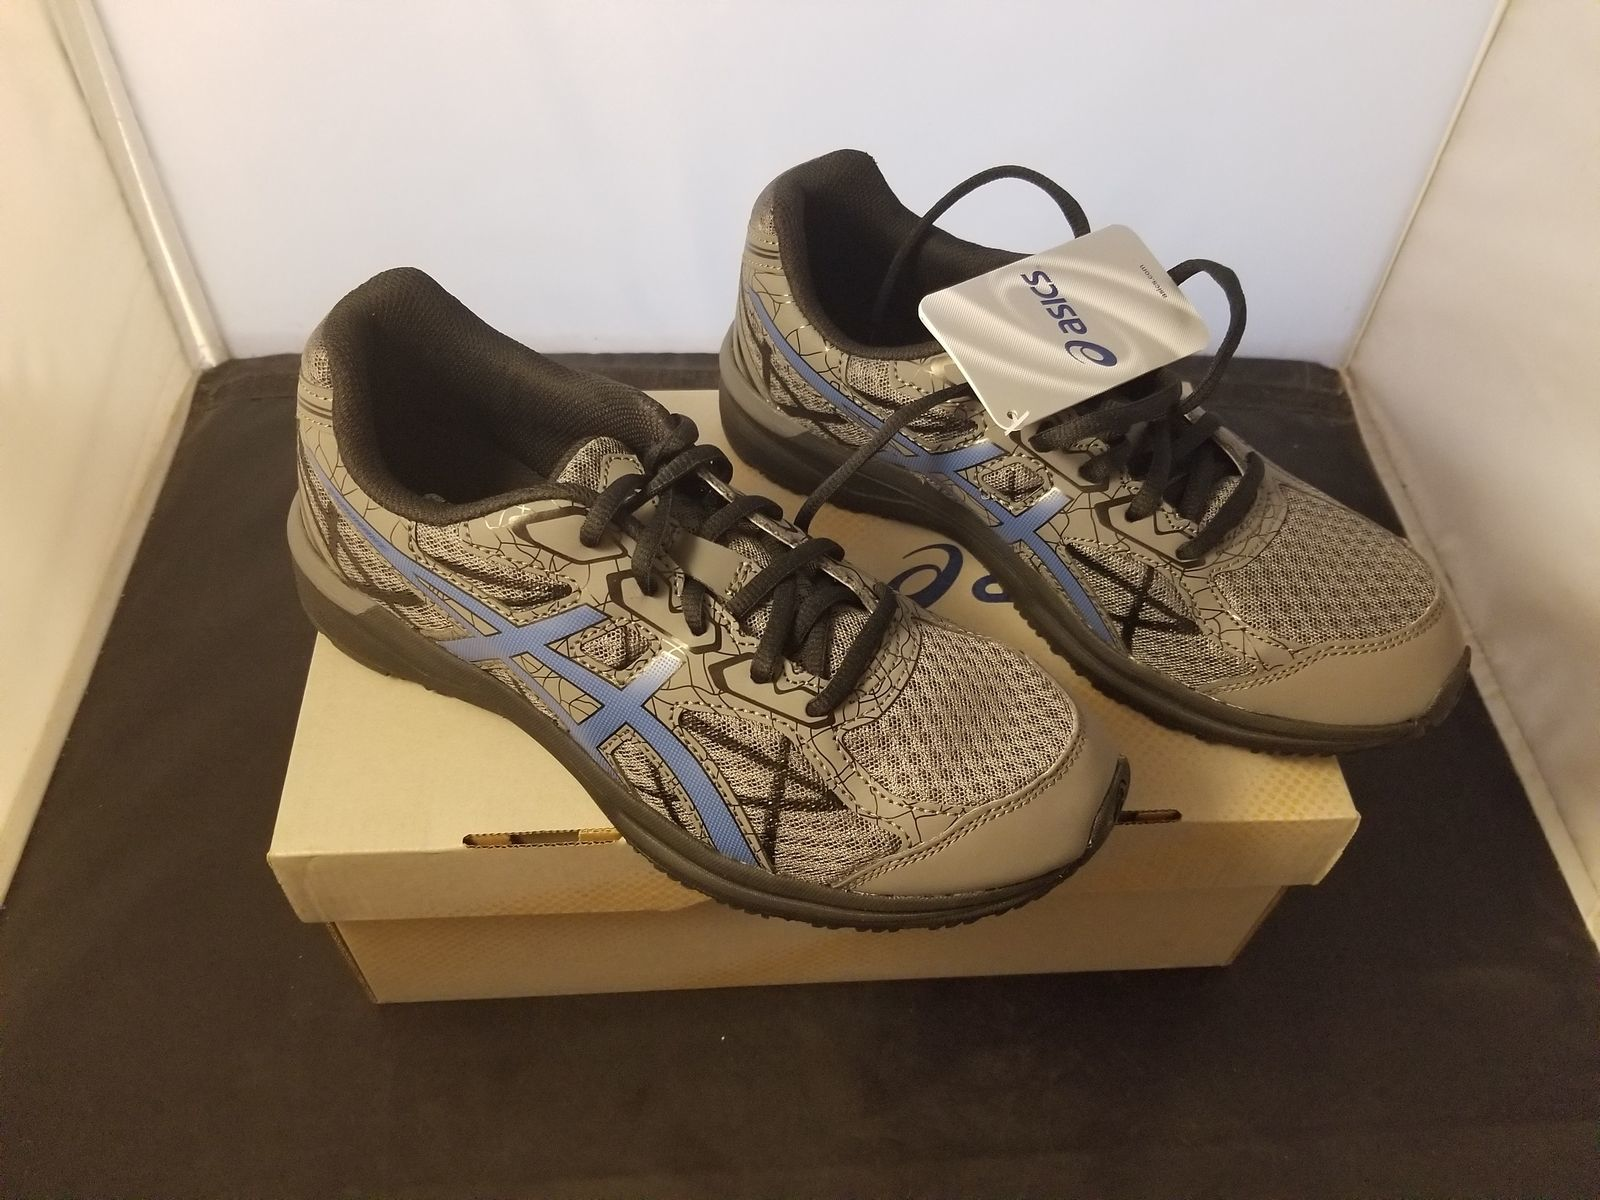 NIB Asics Size 6 Endurant Carbon/Imperial Colorway Running Shoes T742N Brand New